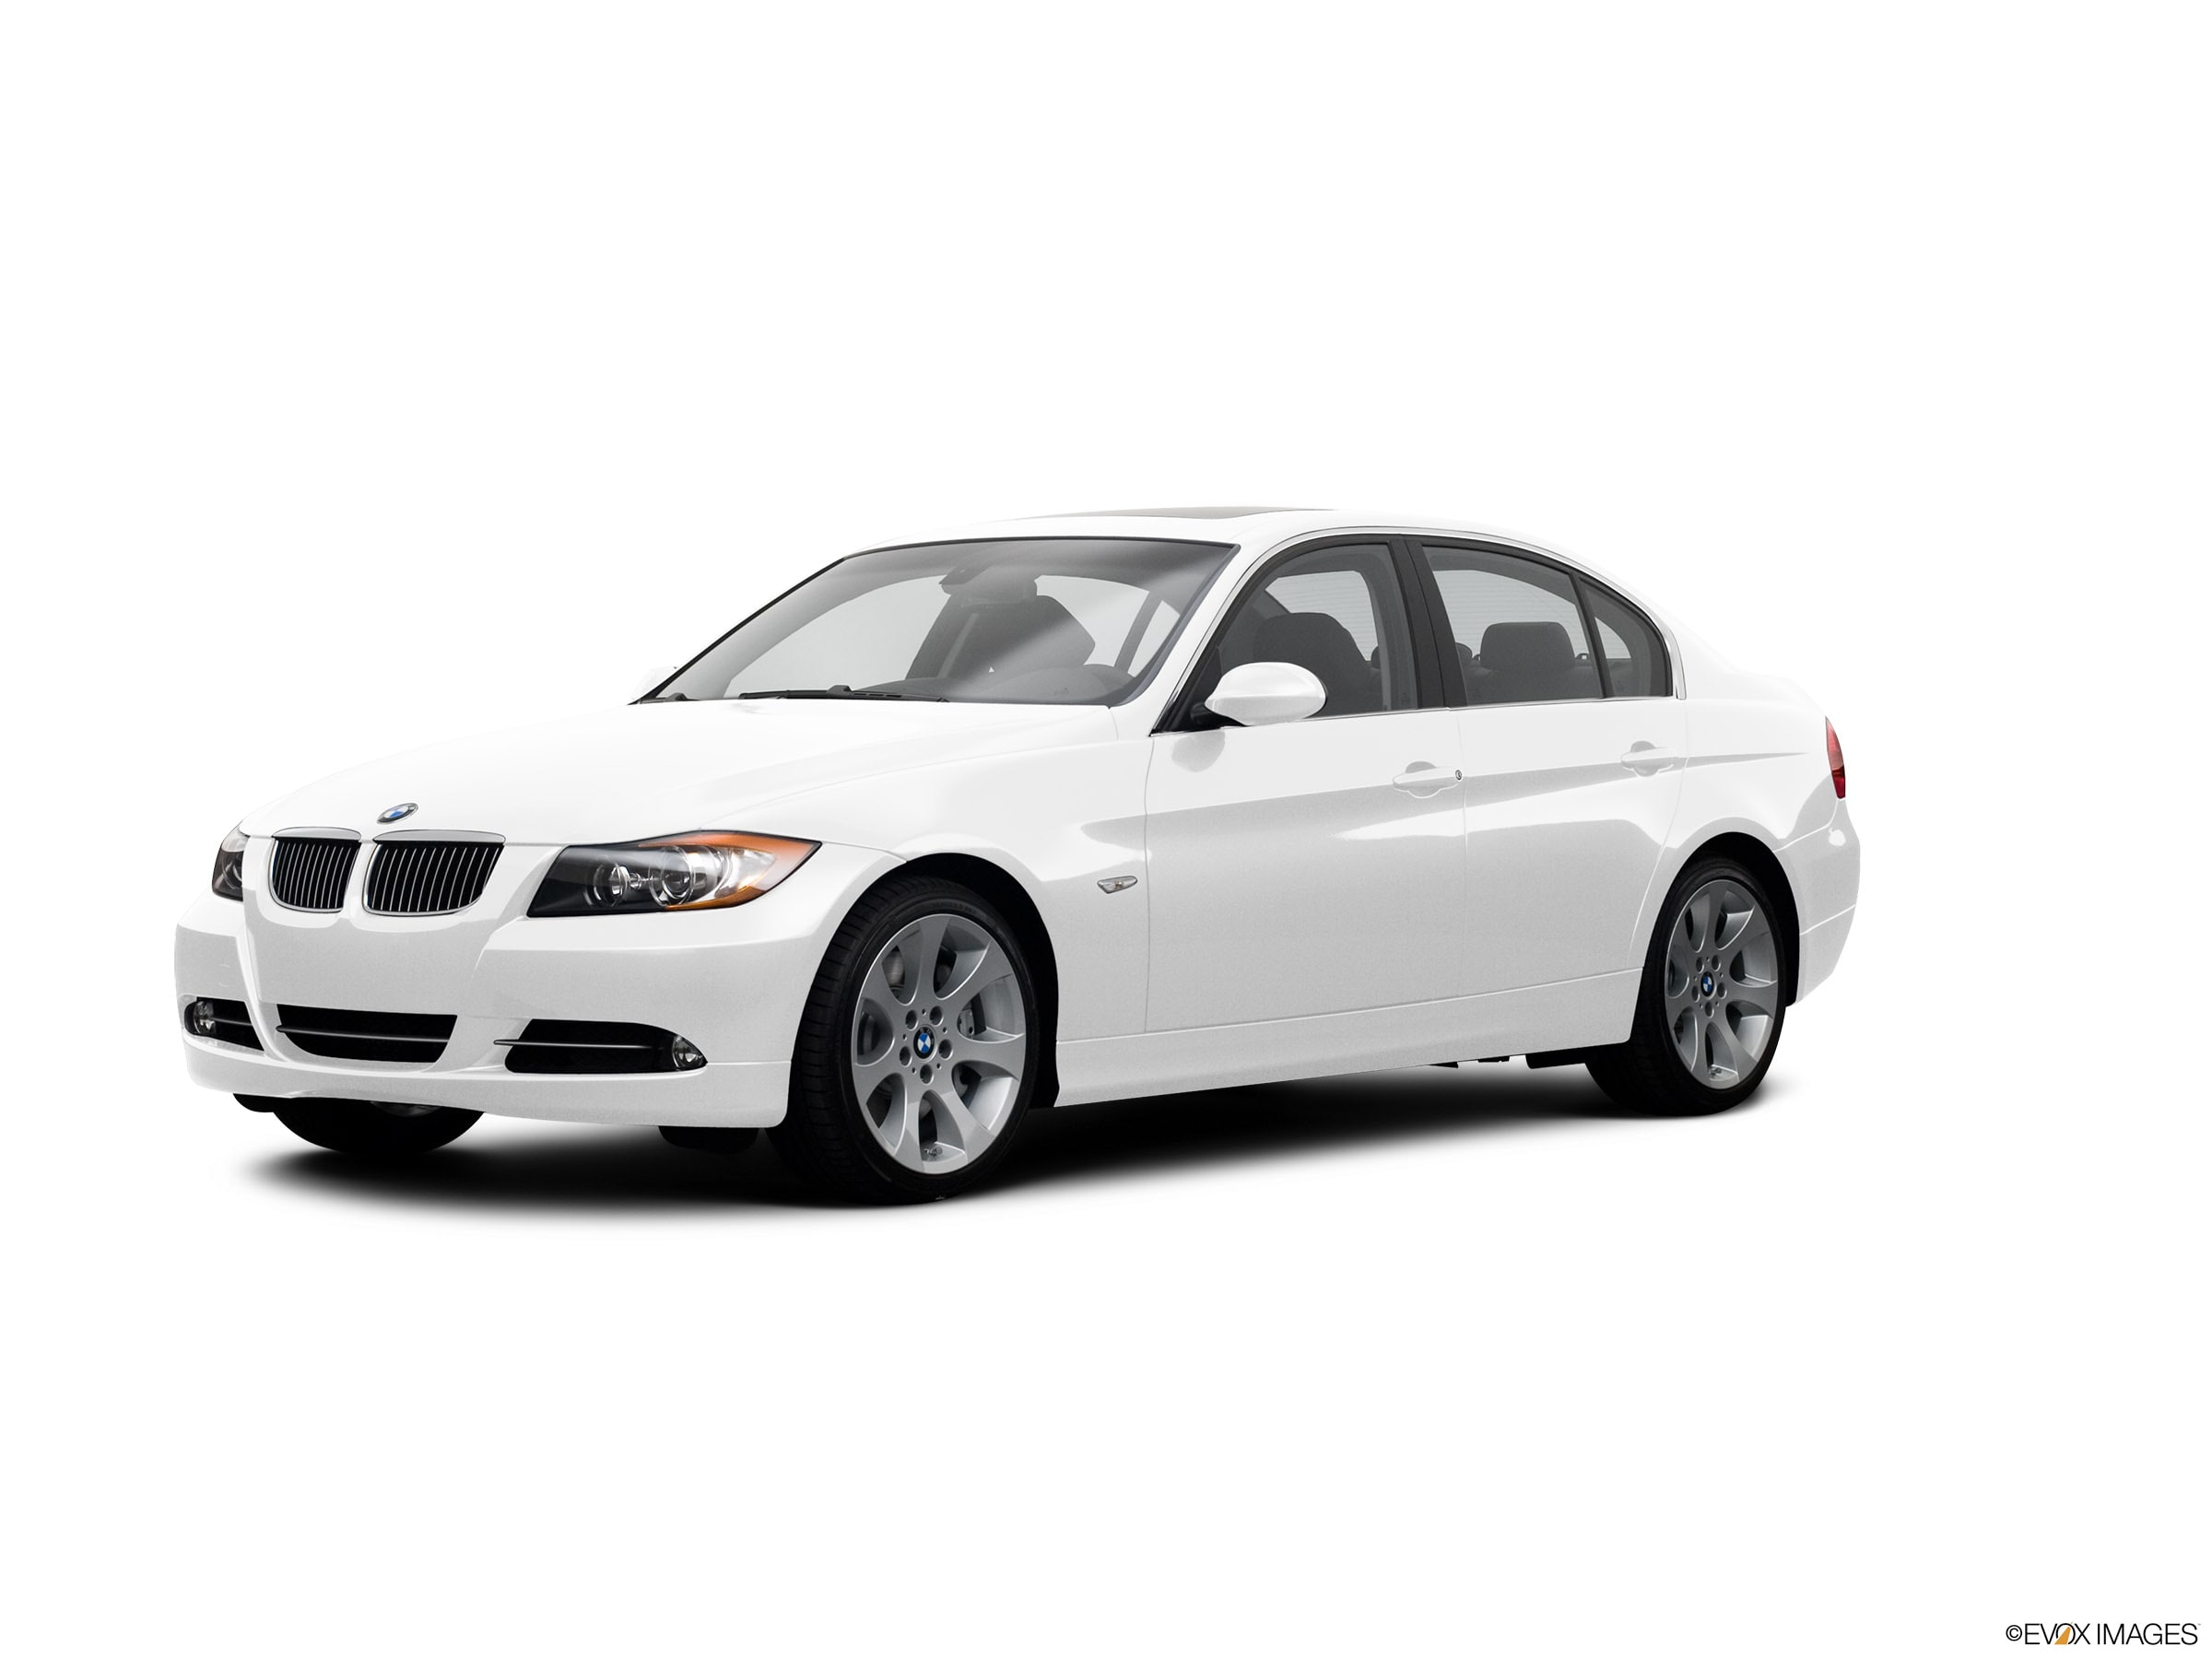 used 2008 bmw 335xi alpine white for sale in kennewick wa stock 8a284932a lithia chrysler dodge jeep ram fiat of tri cities